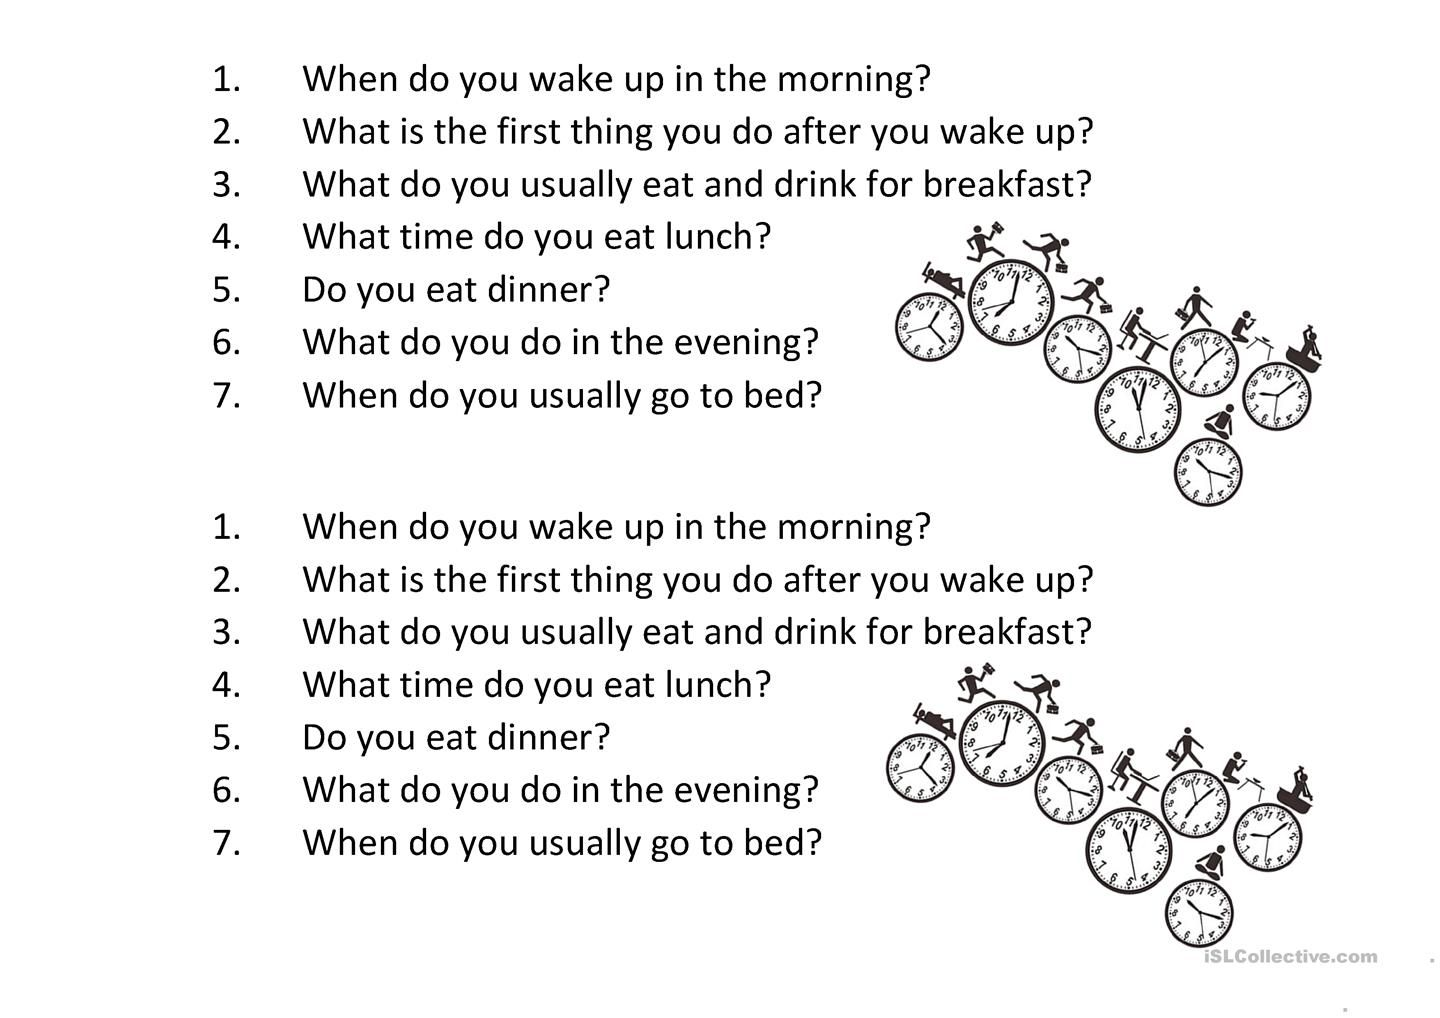 Daily Routine Questions Basic